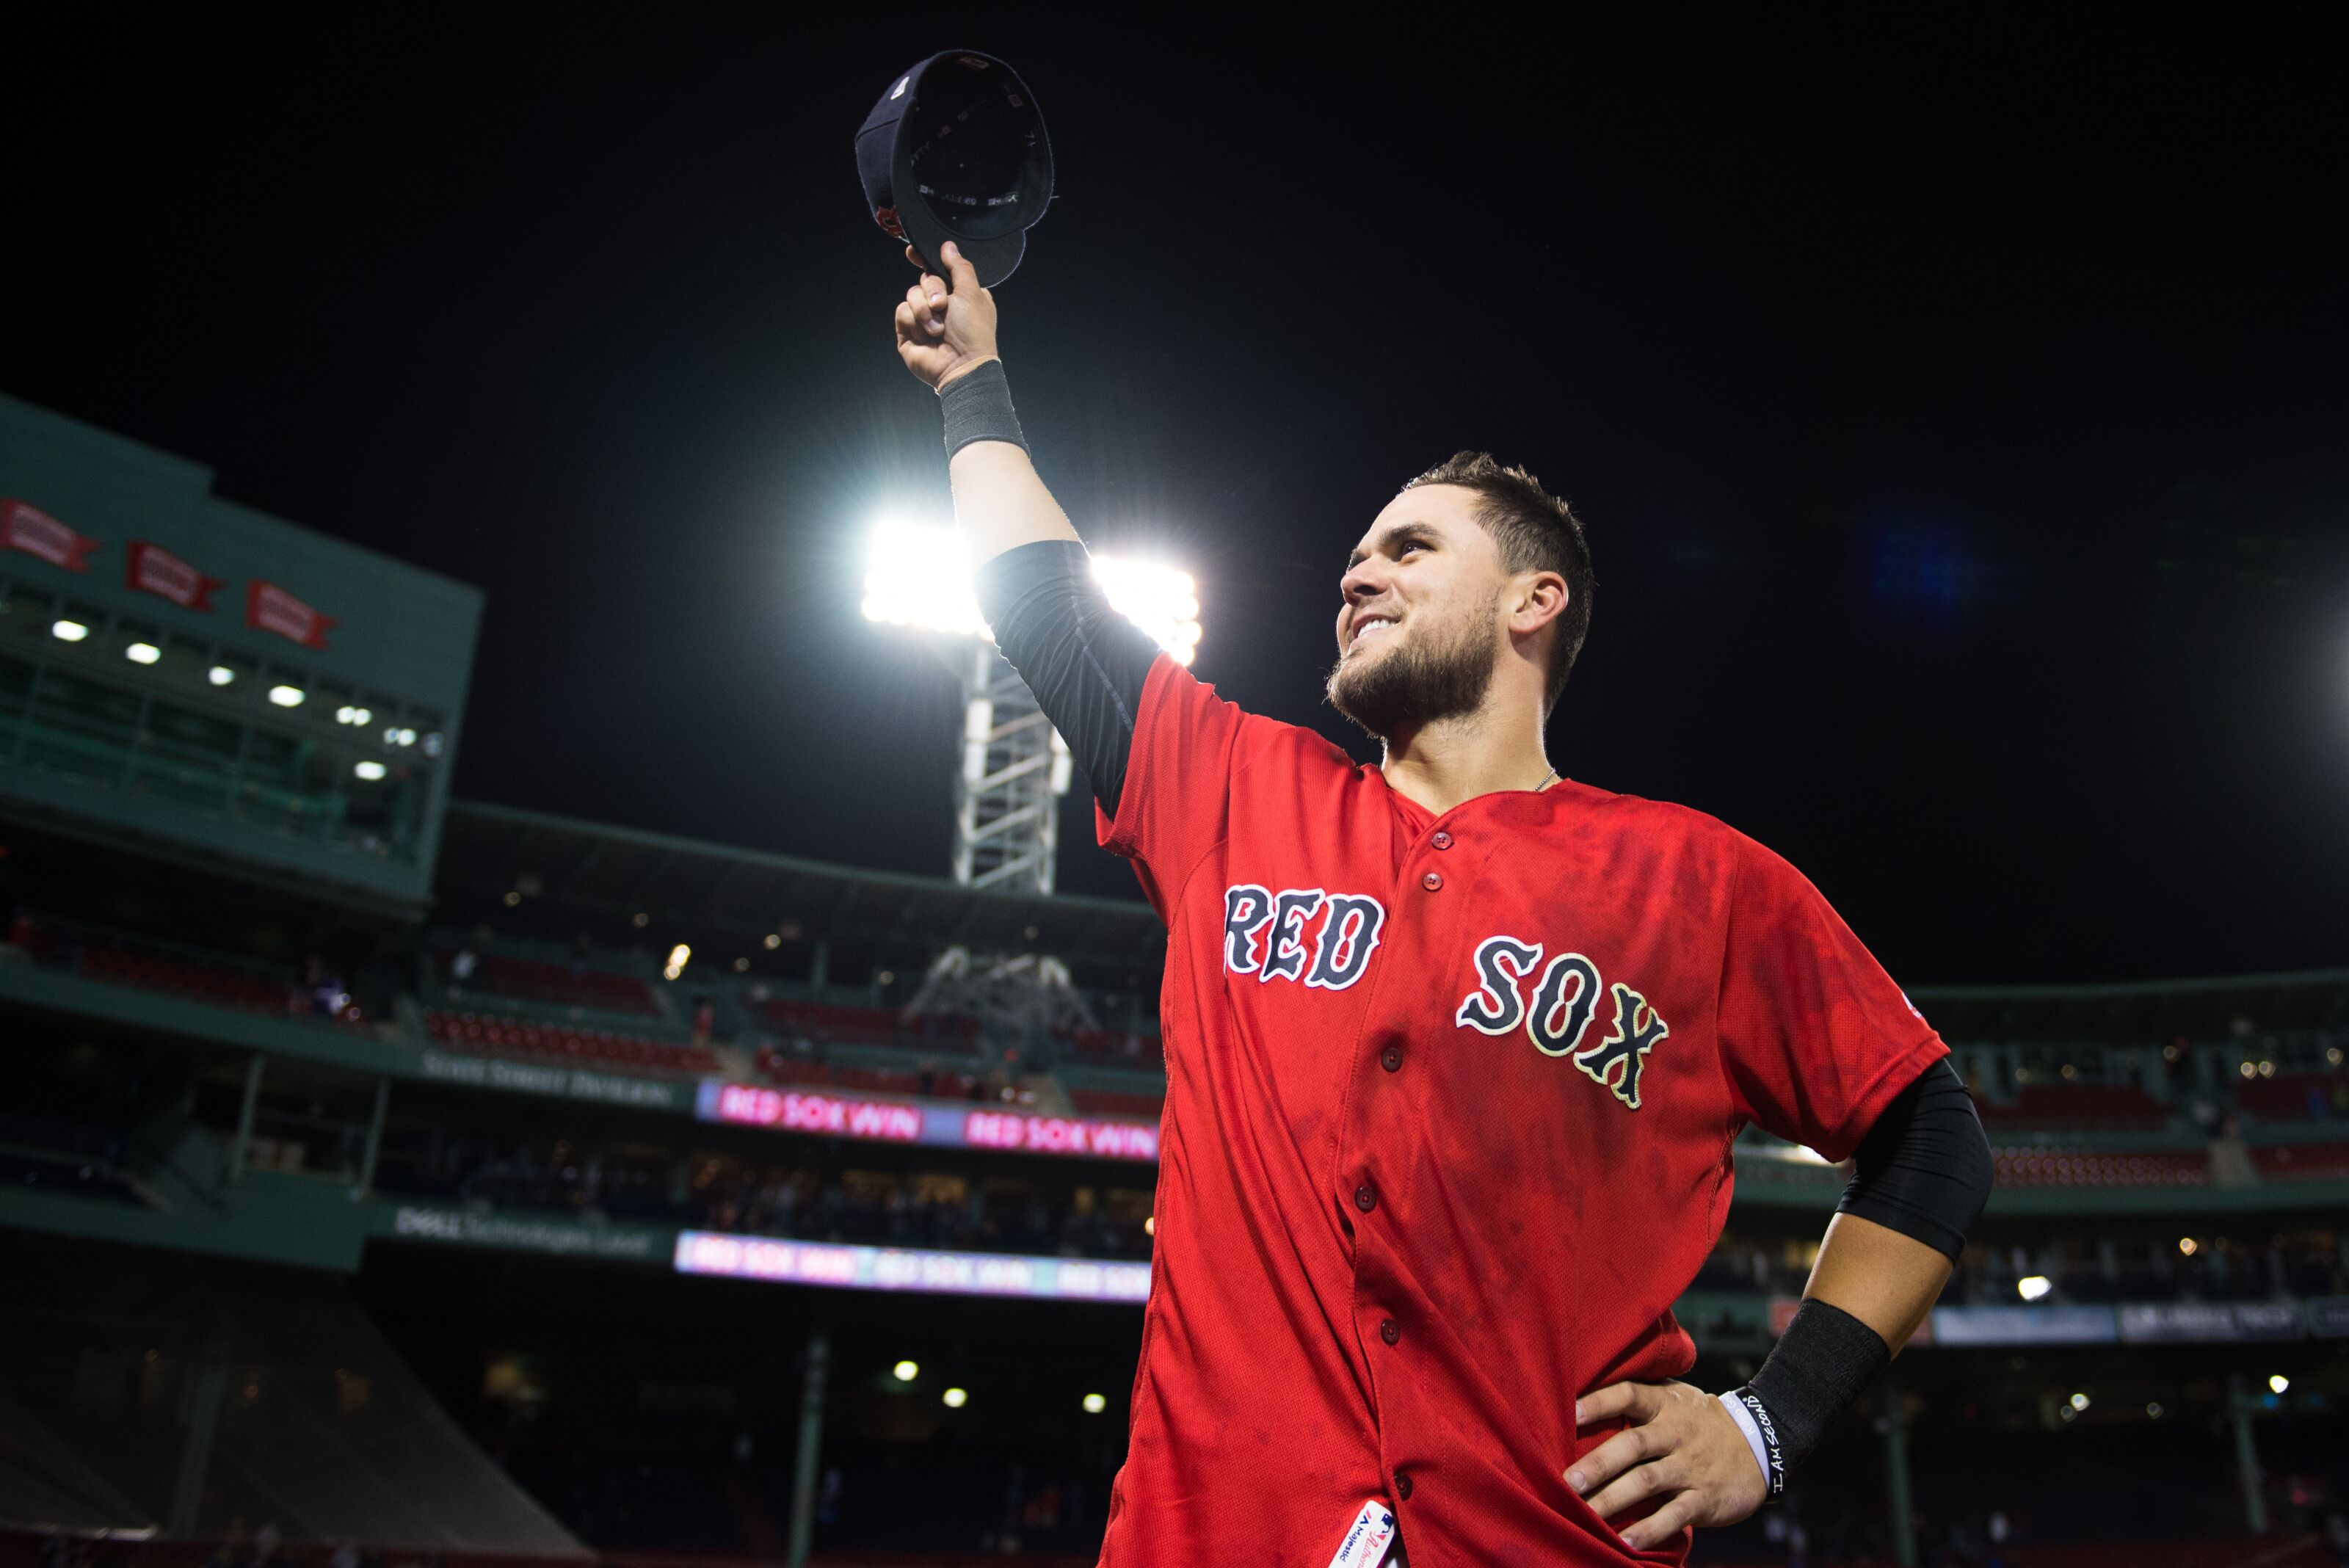 Red Sox should position Michael Chavis as their next first baseman